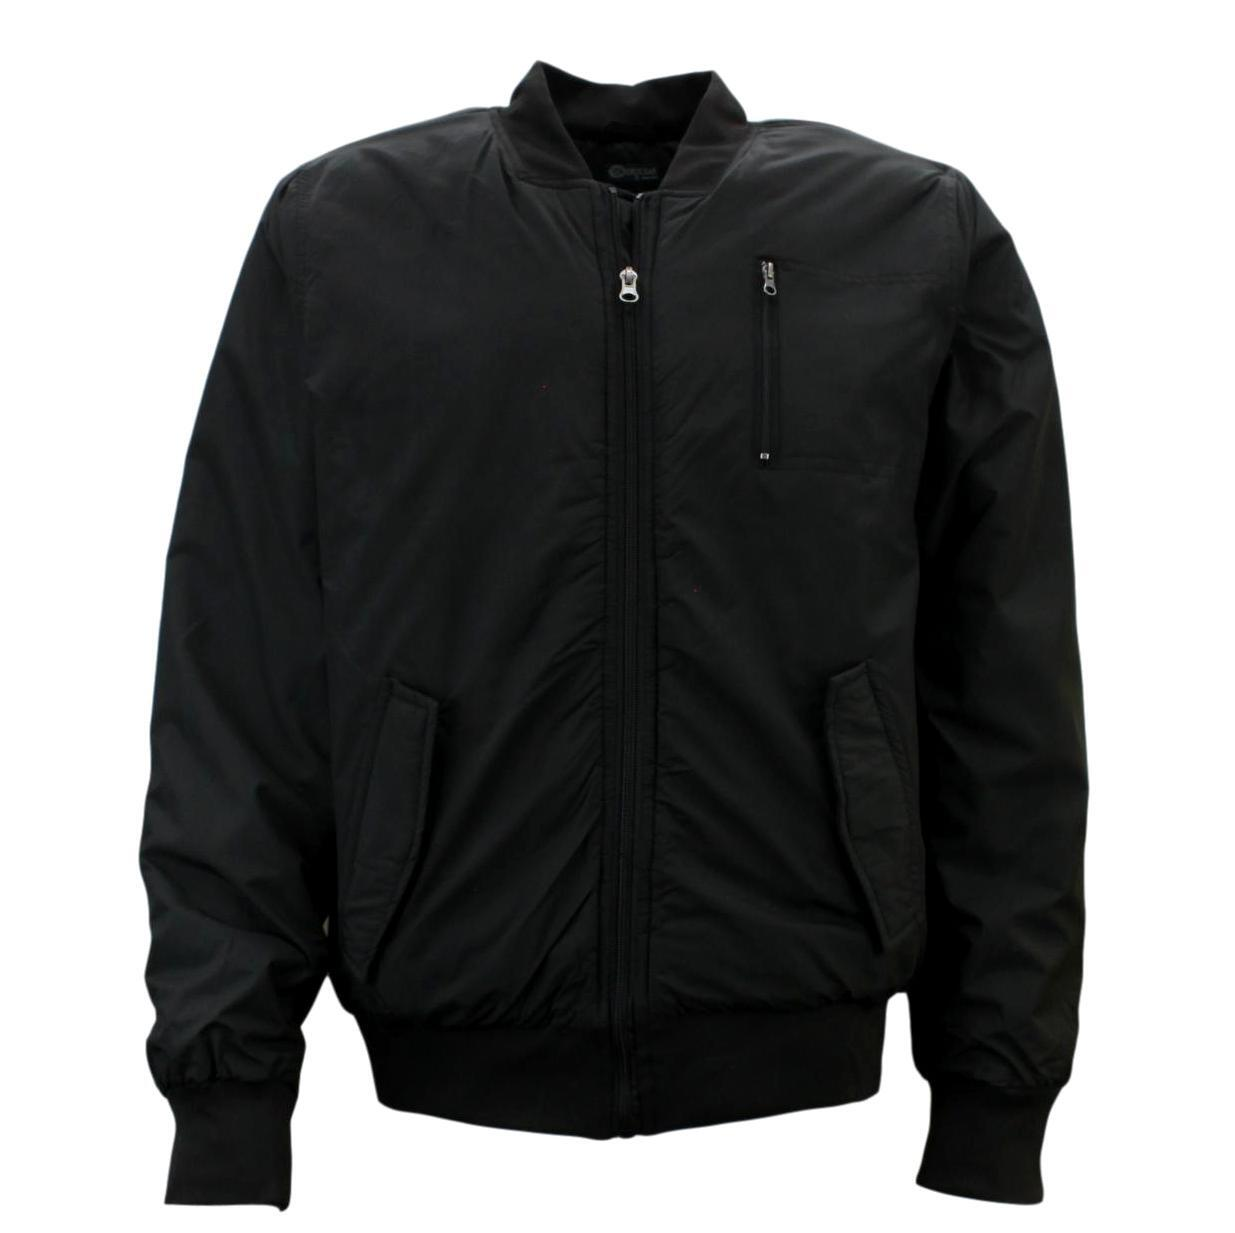 Ozemocean-Mens-Bomber-Jacket-Water-Resistant-Padded-Coat-Winter-Warm-Quilted thumbnail 4